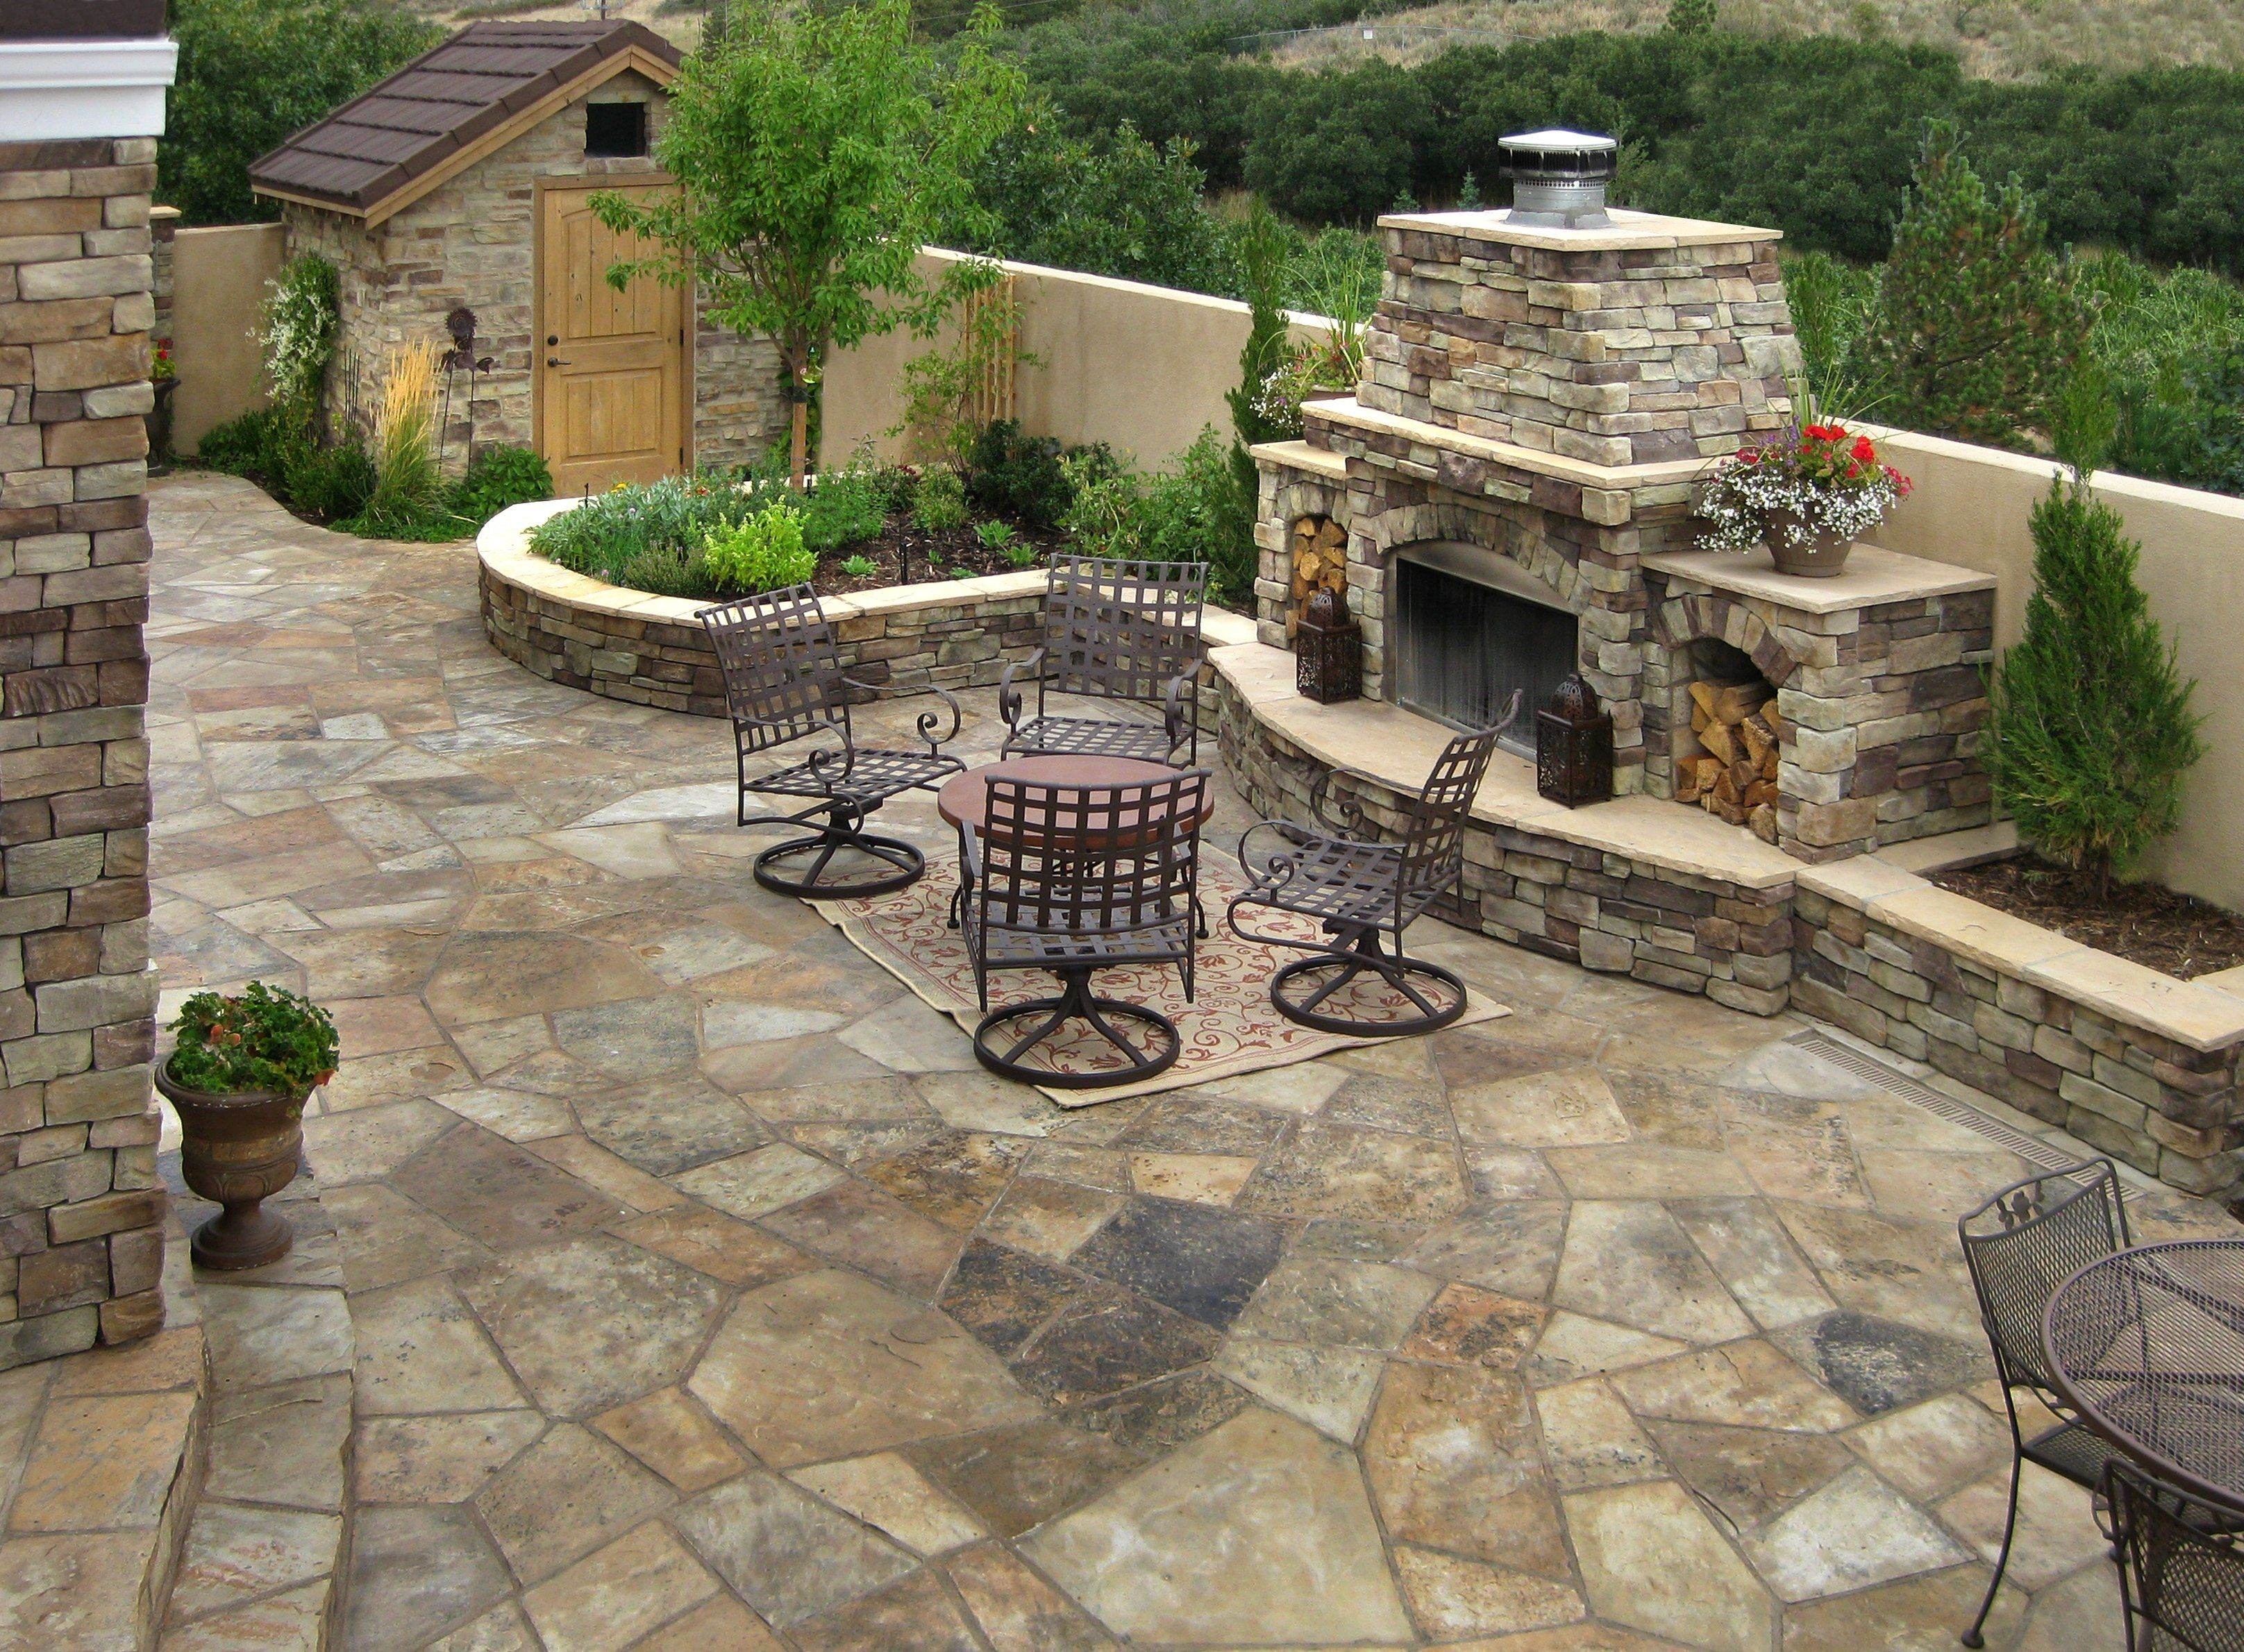 Outdoor Living Spaces Accent Landscapes Inc For Flagstone Patio Diy Flagstone Patio Diy Tips And Ideas With Images Patio Stones Backyard Patio Flagstone Patio